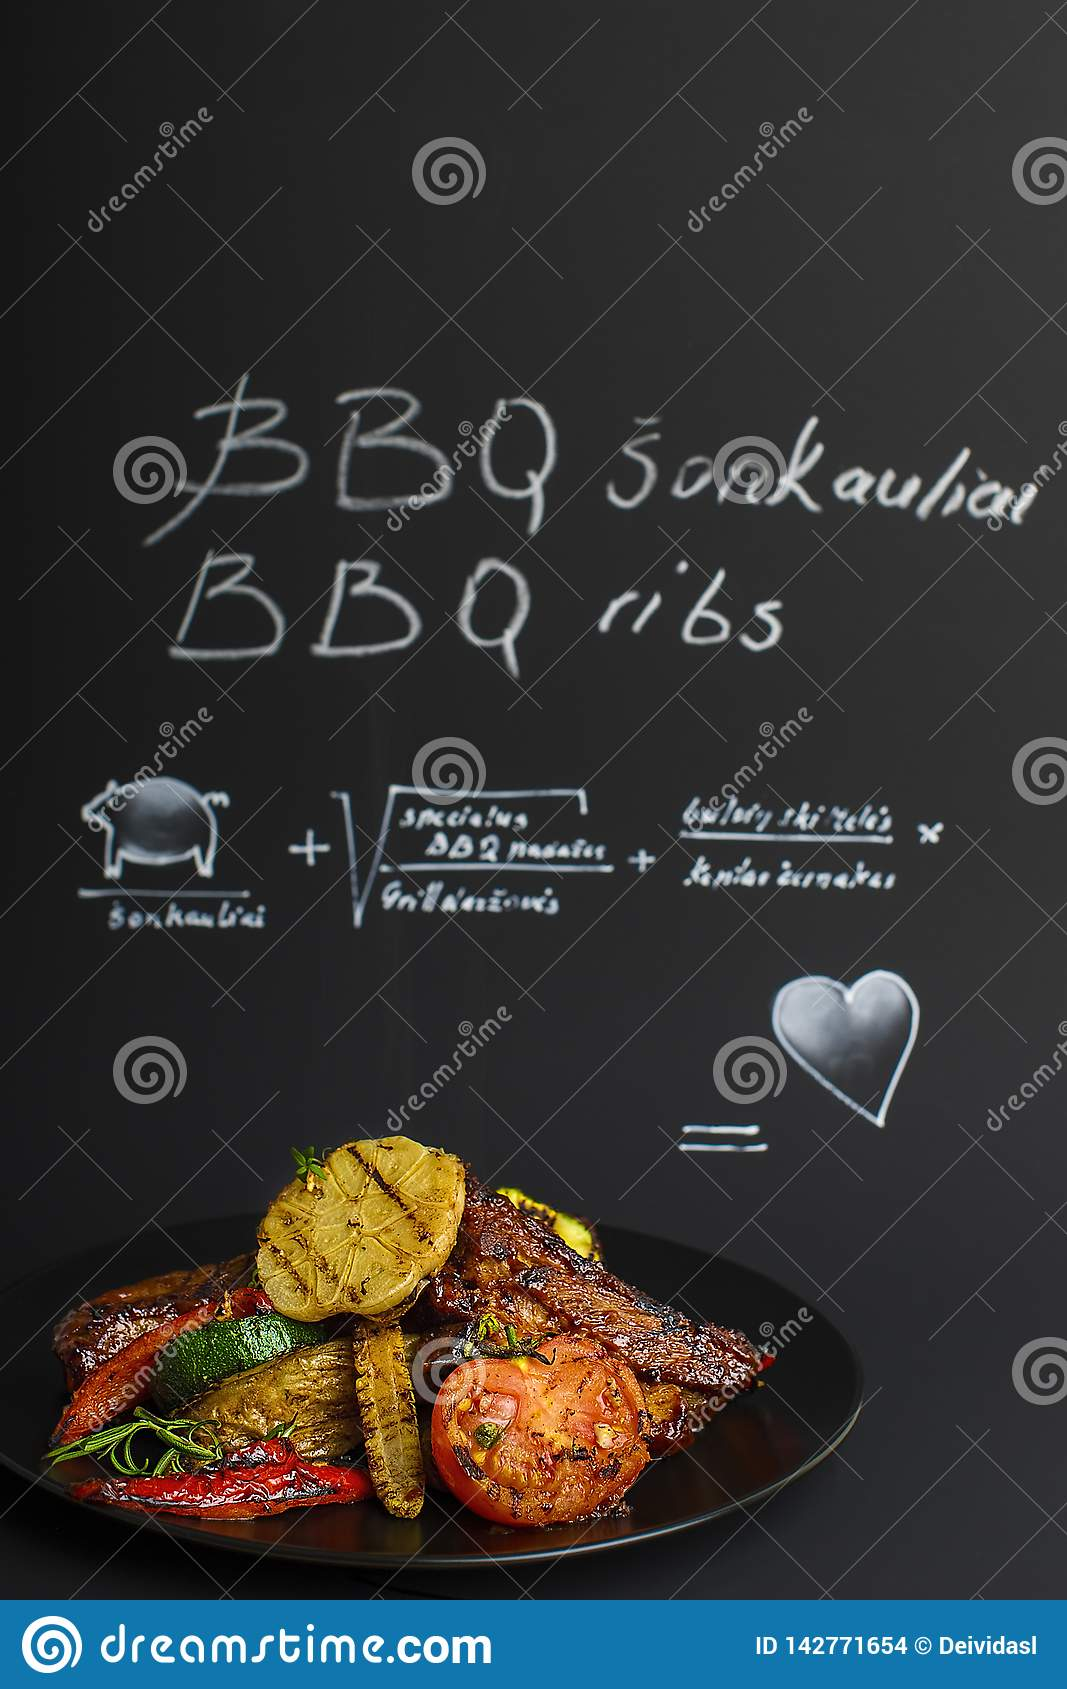 Barbecue ribs on a black background in a studio.